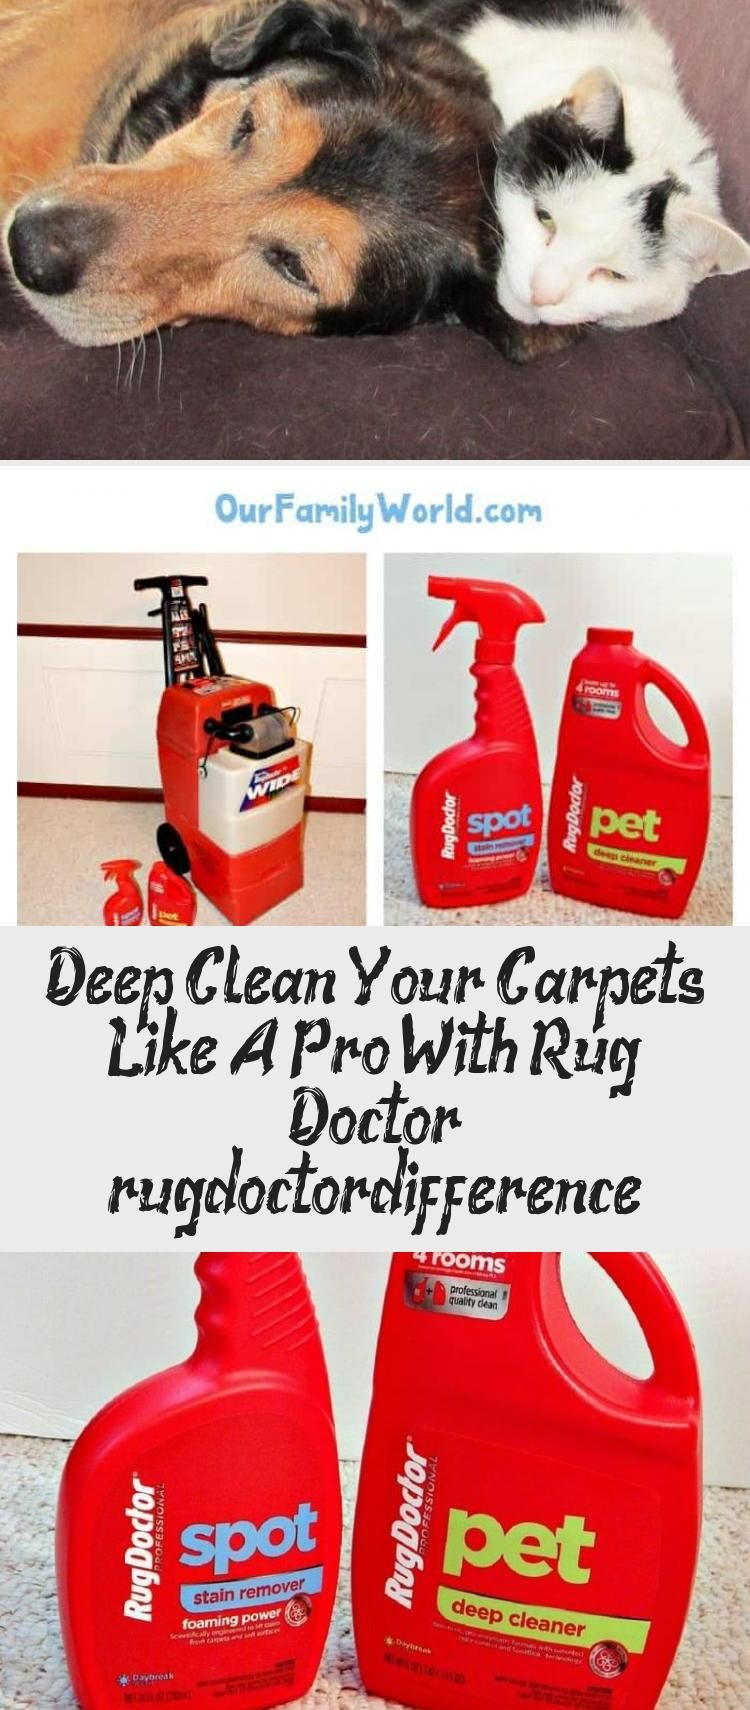 Deep Clean Your Carpets Like A Pro With Rug Doctor Rugdoctordifference In 2020 Rug Doctor Deep Cleaning Carpet Cleaning By Hand